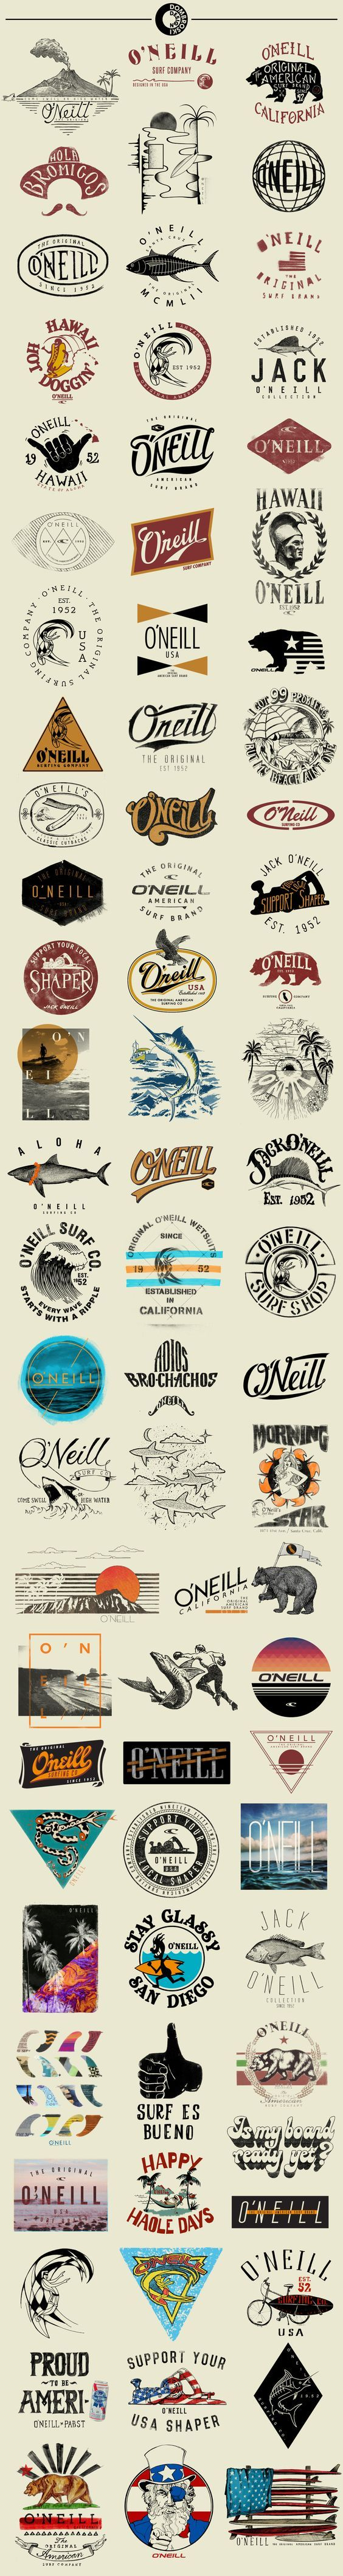 O'Neill T-Shirt Graphics by Ray Dombroski. O'Neill is known as the Original American Surfing Company. It began as a wetsuit company and surf shop, founded by Jack O'Neill in 1952. It continues to be one of the most sought-after surf brands today.: